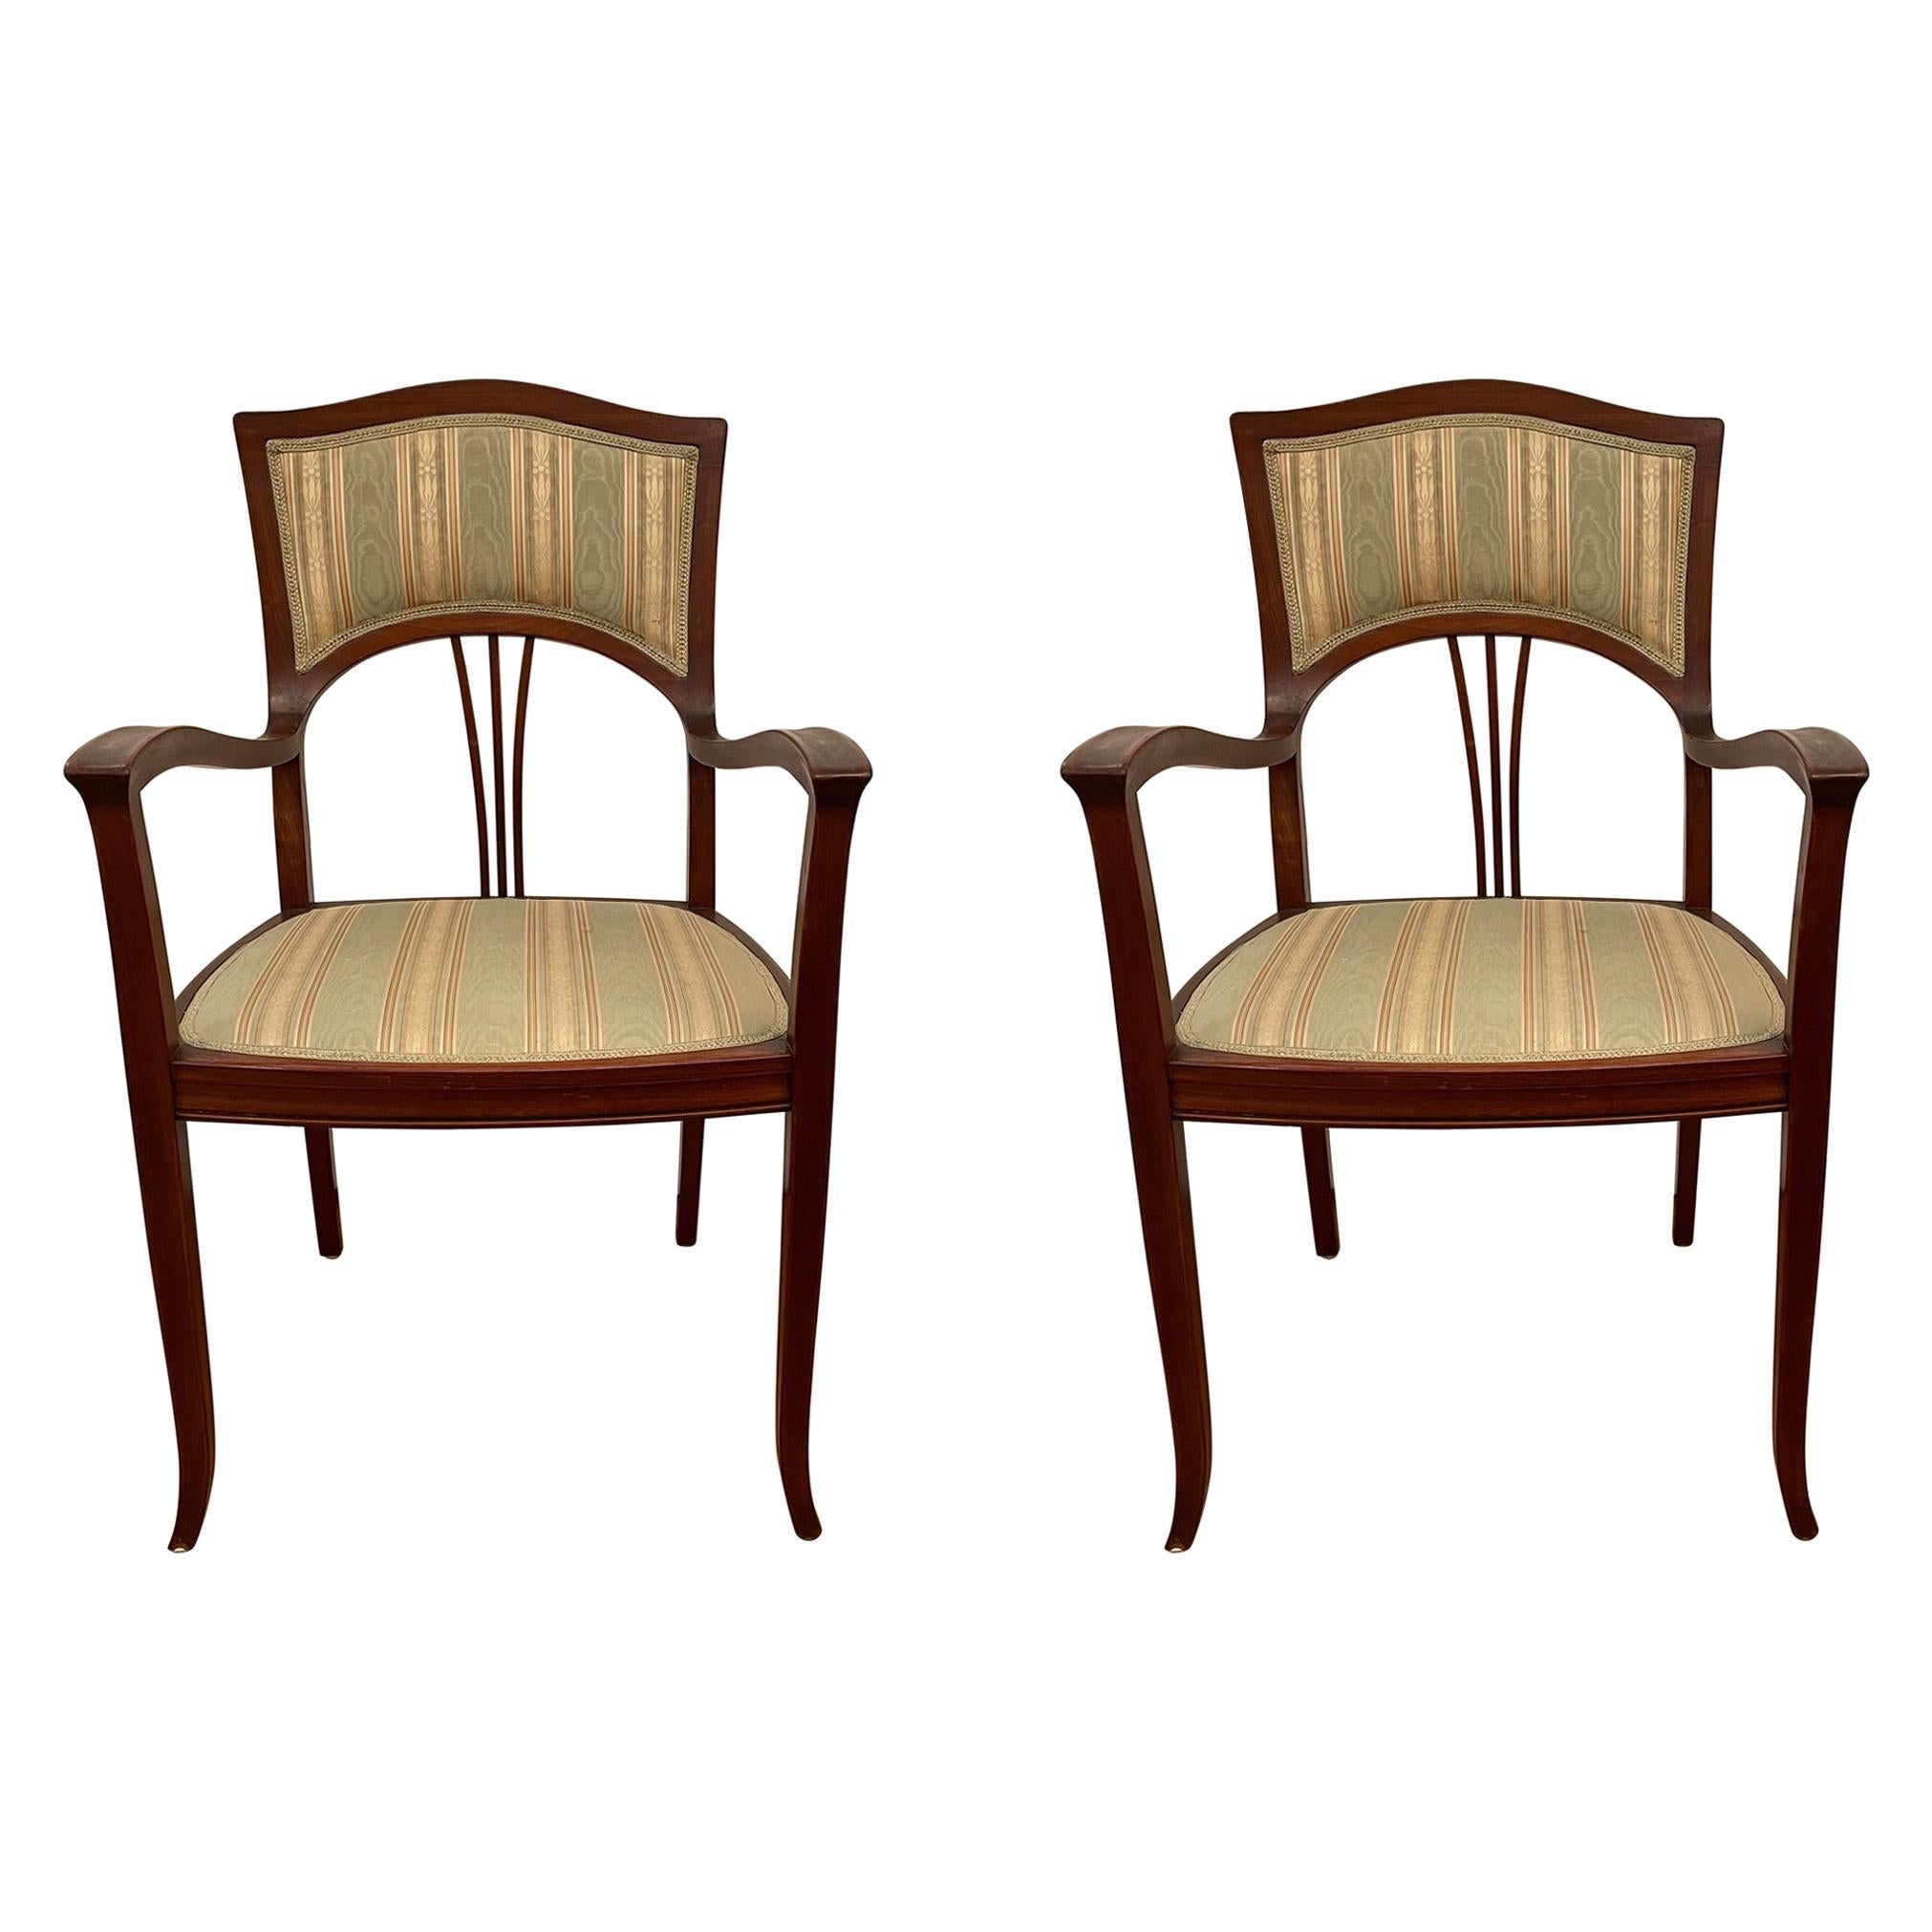 Pair of Art Nouveau Armchairs from Sweden, circa 1900